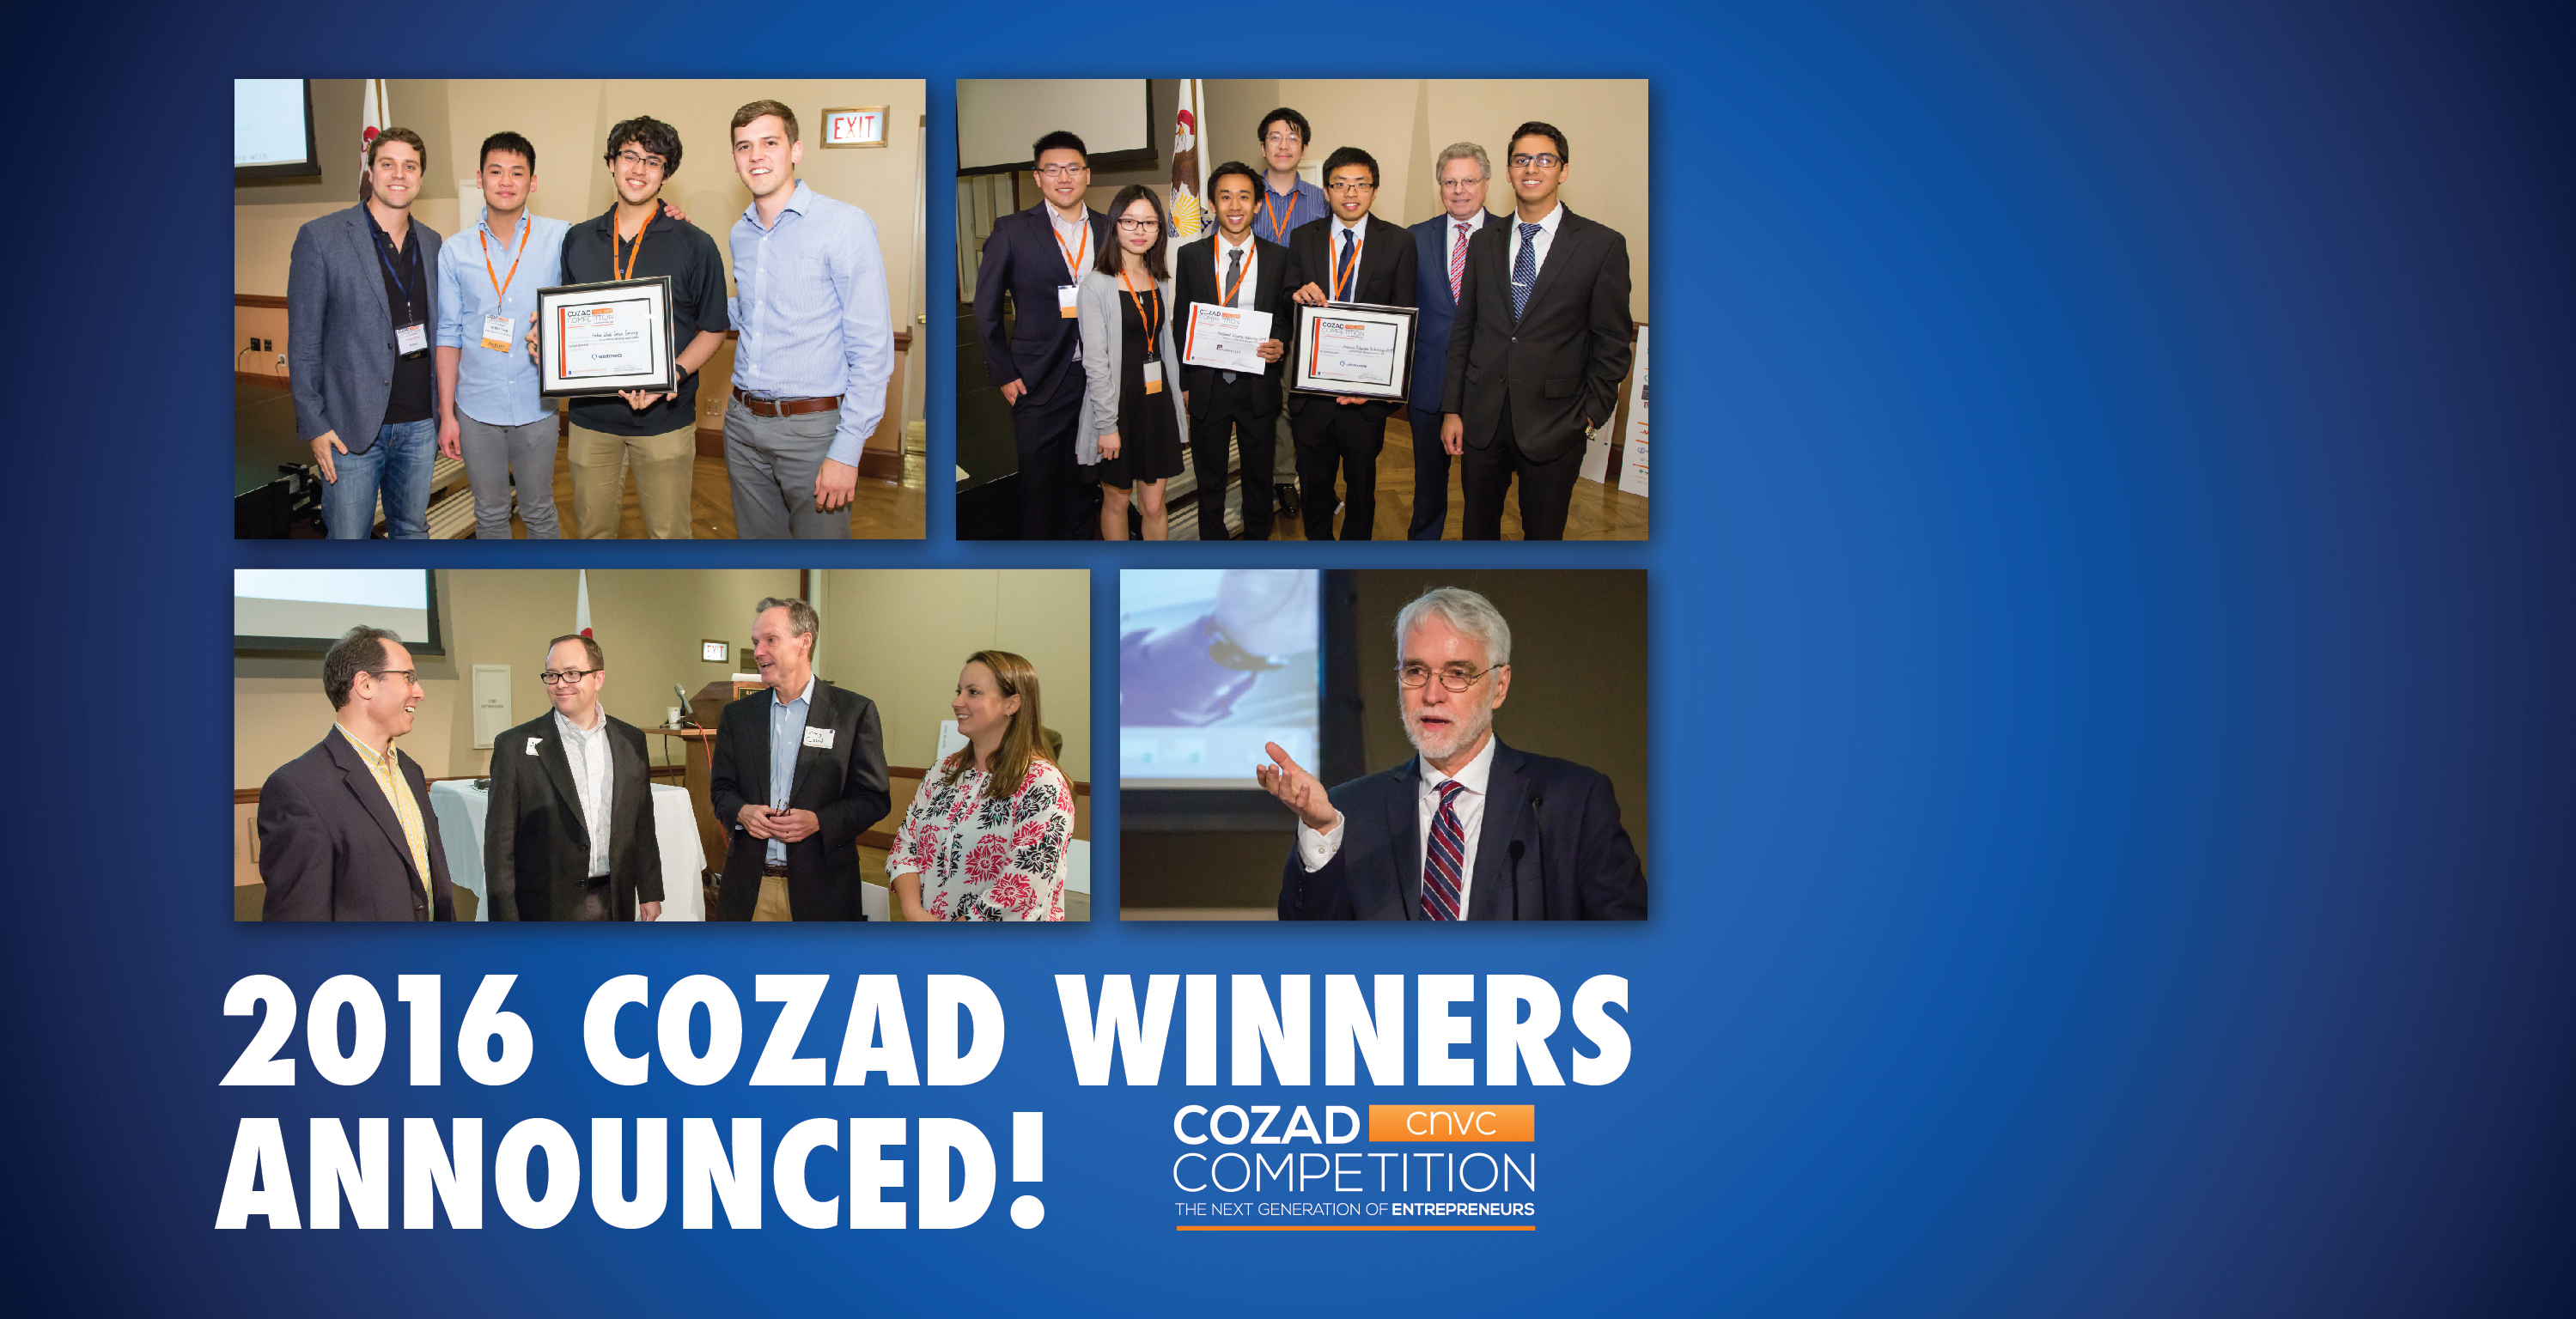 2016 Cozad Winners Announced!